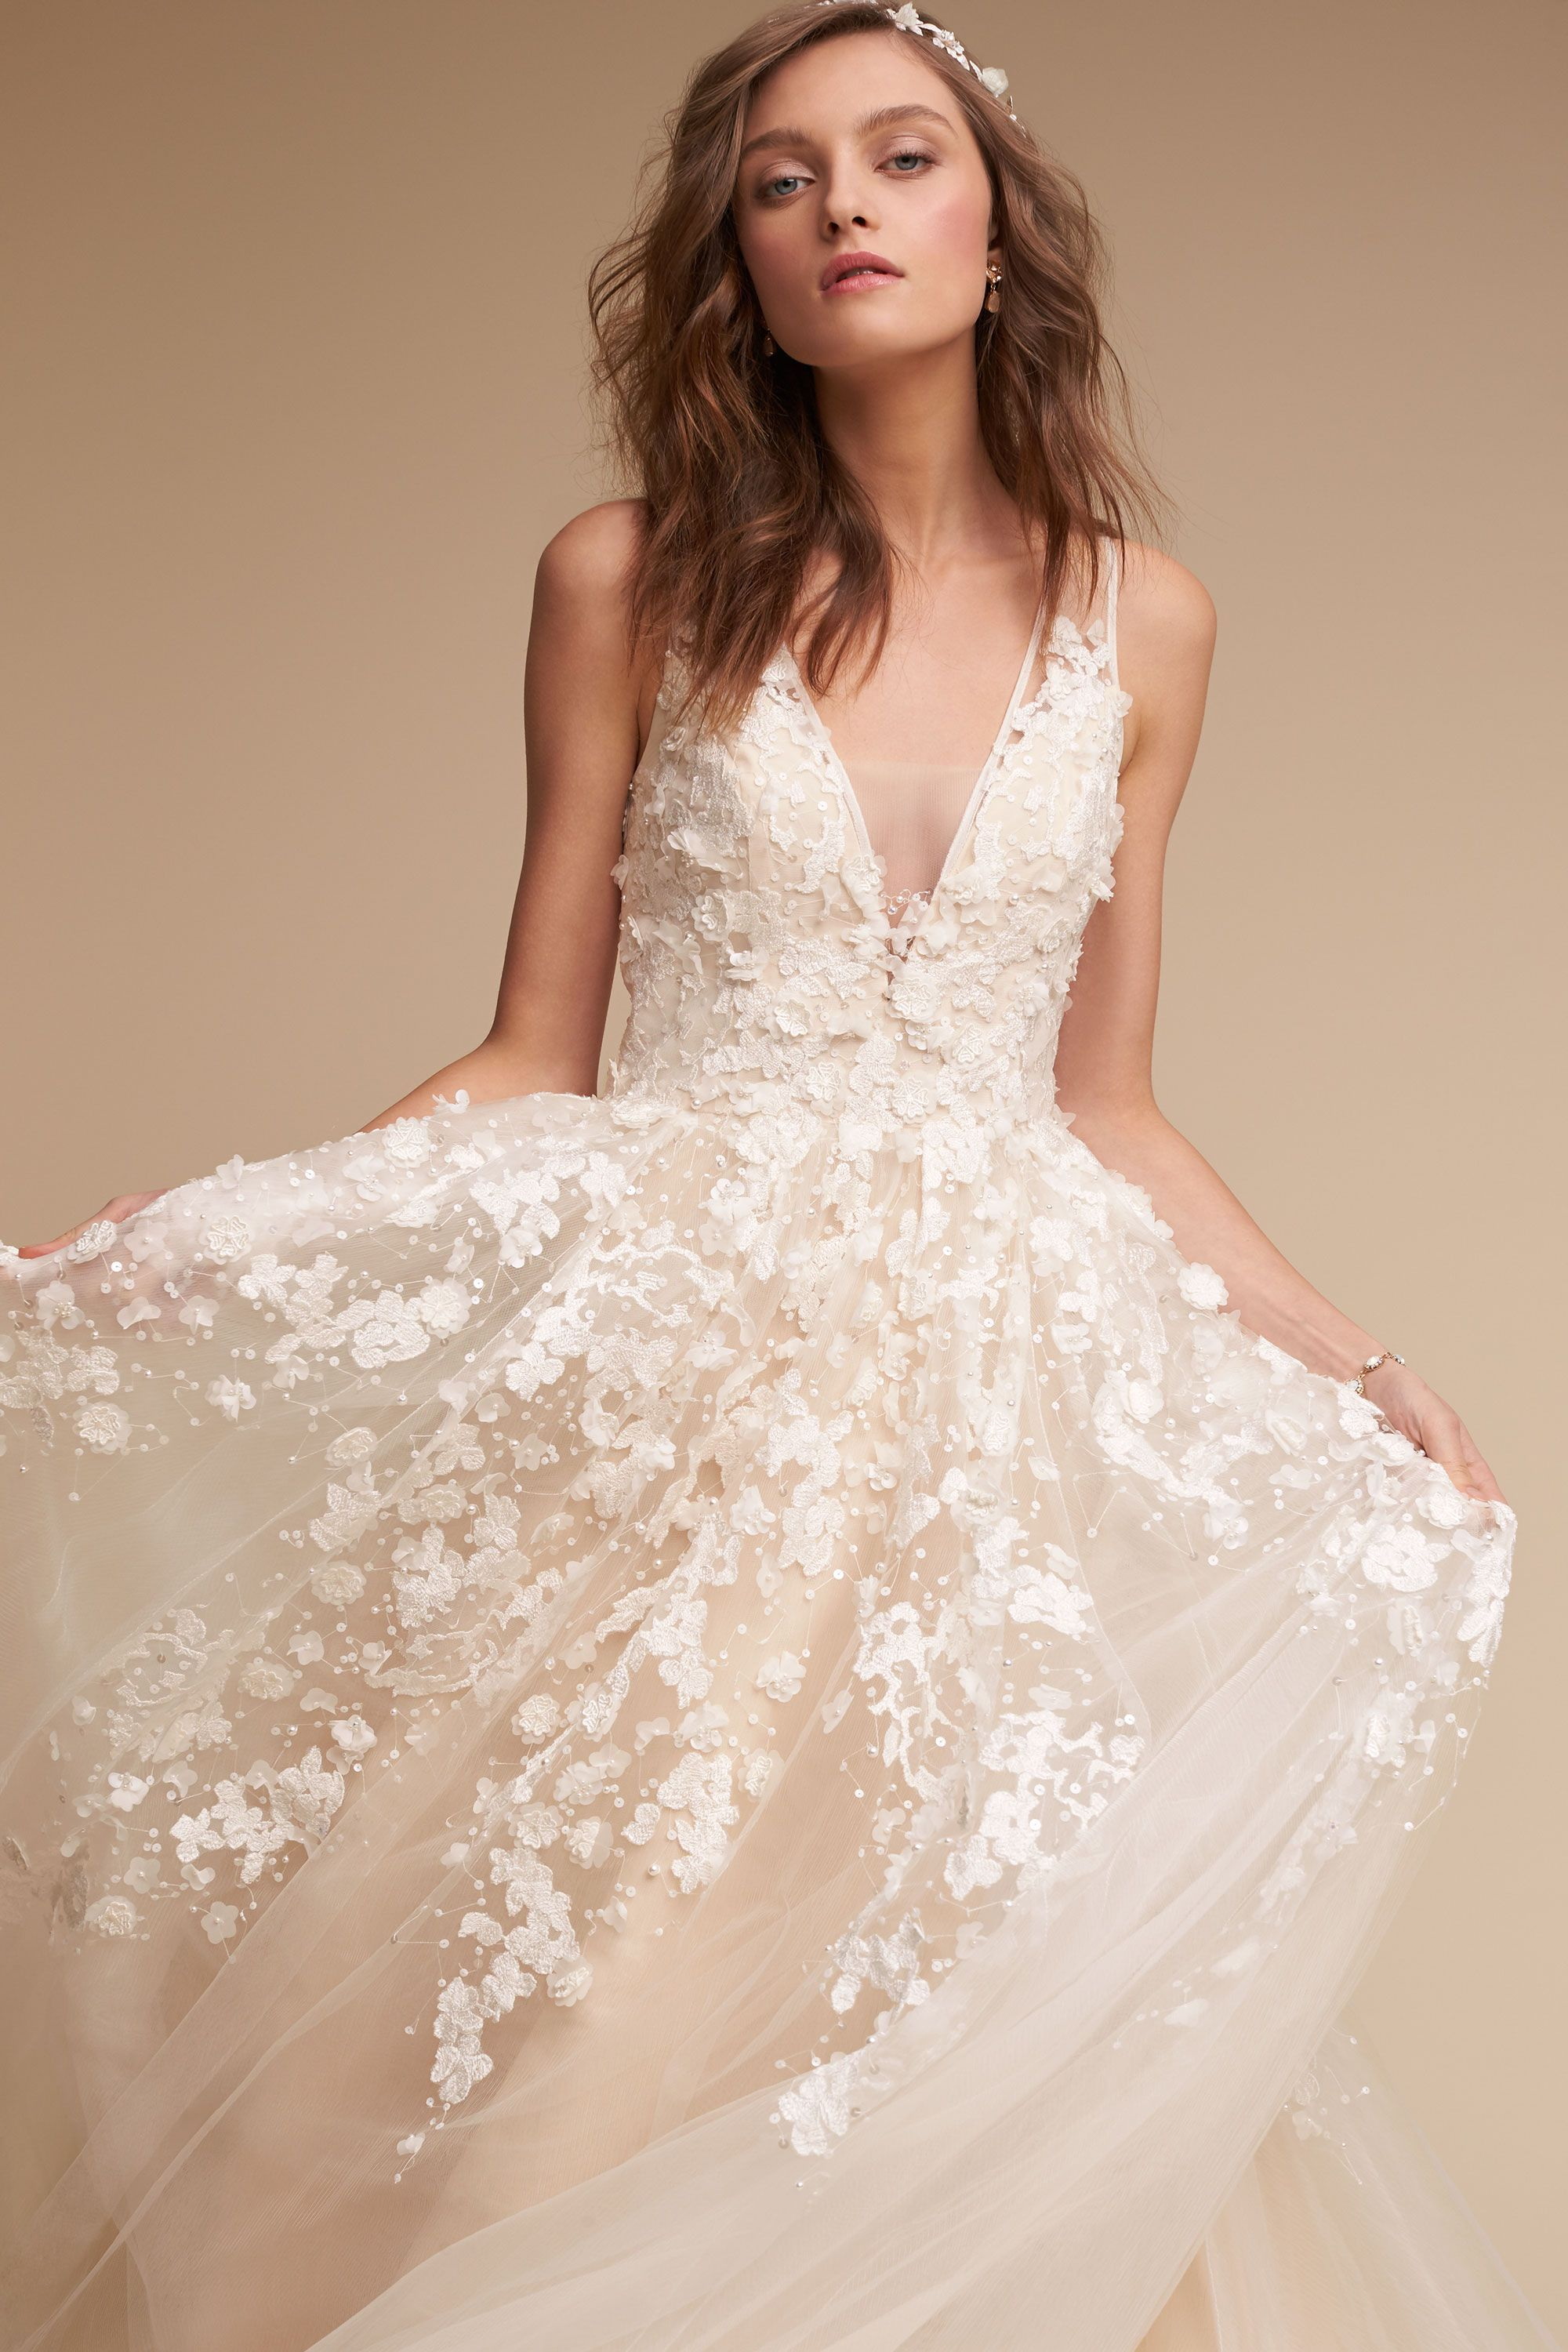 Casual wedding dress with sleeves  Pin by Christie Gard on one day  Pinterest  Gowns Wedding dress